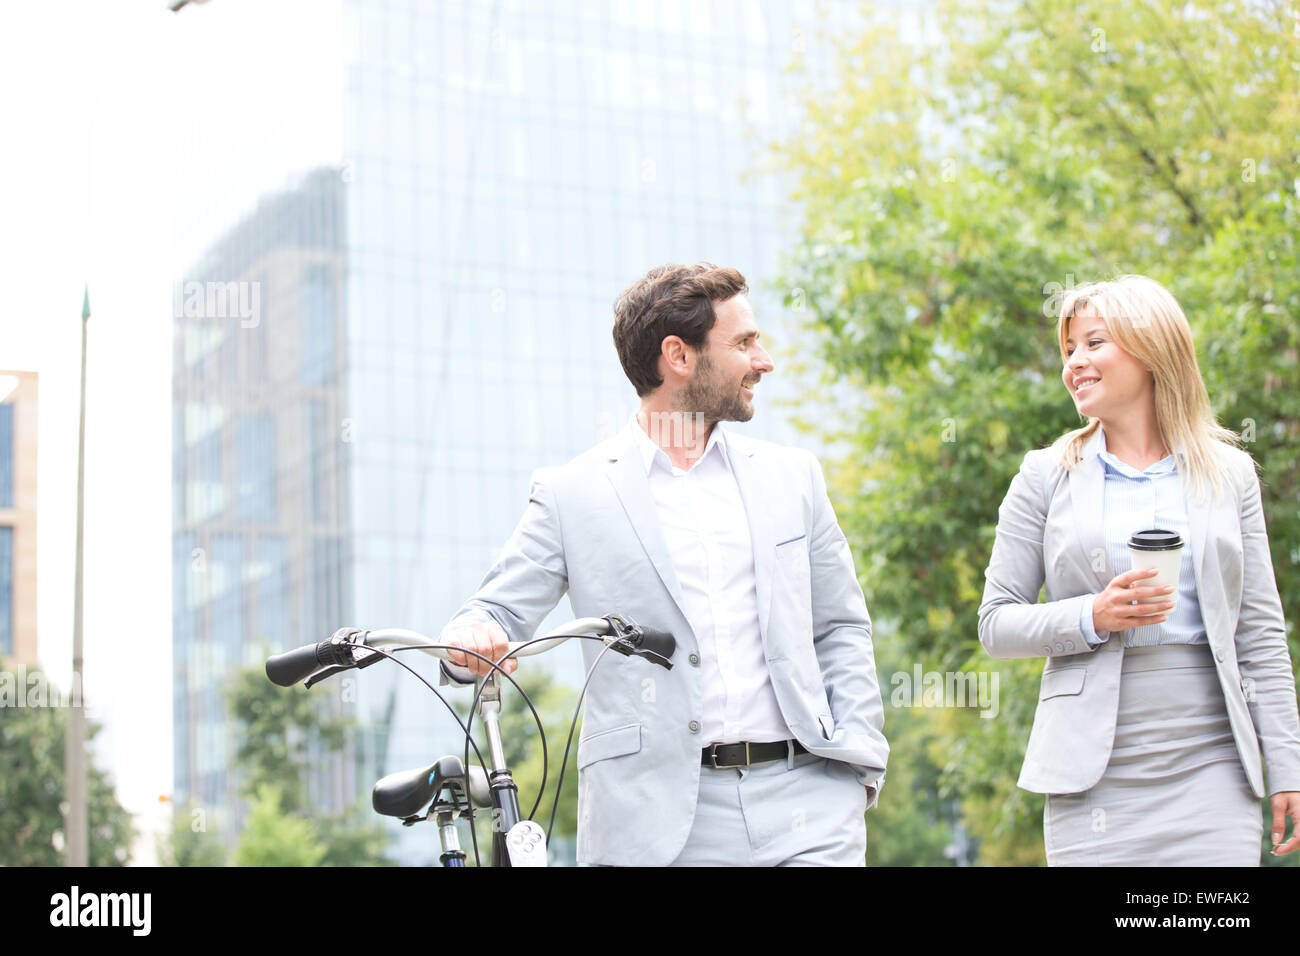 Businesspeople with bicycle and disposable cup conversing while walking outdoors - Stock Image